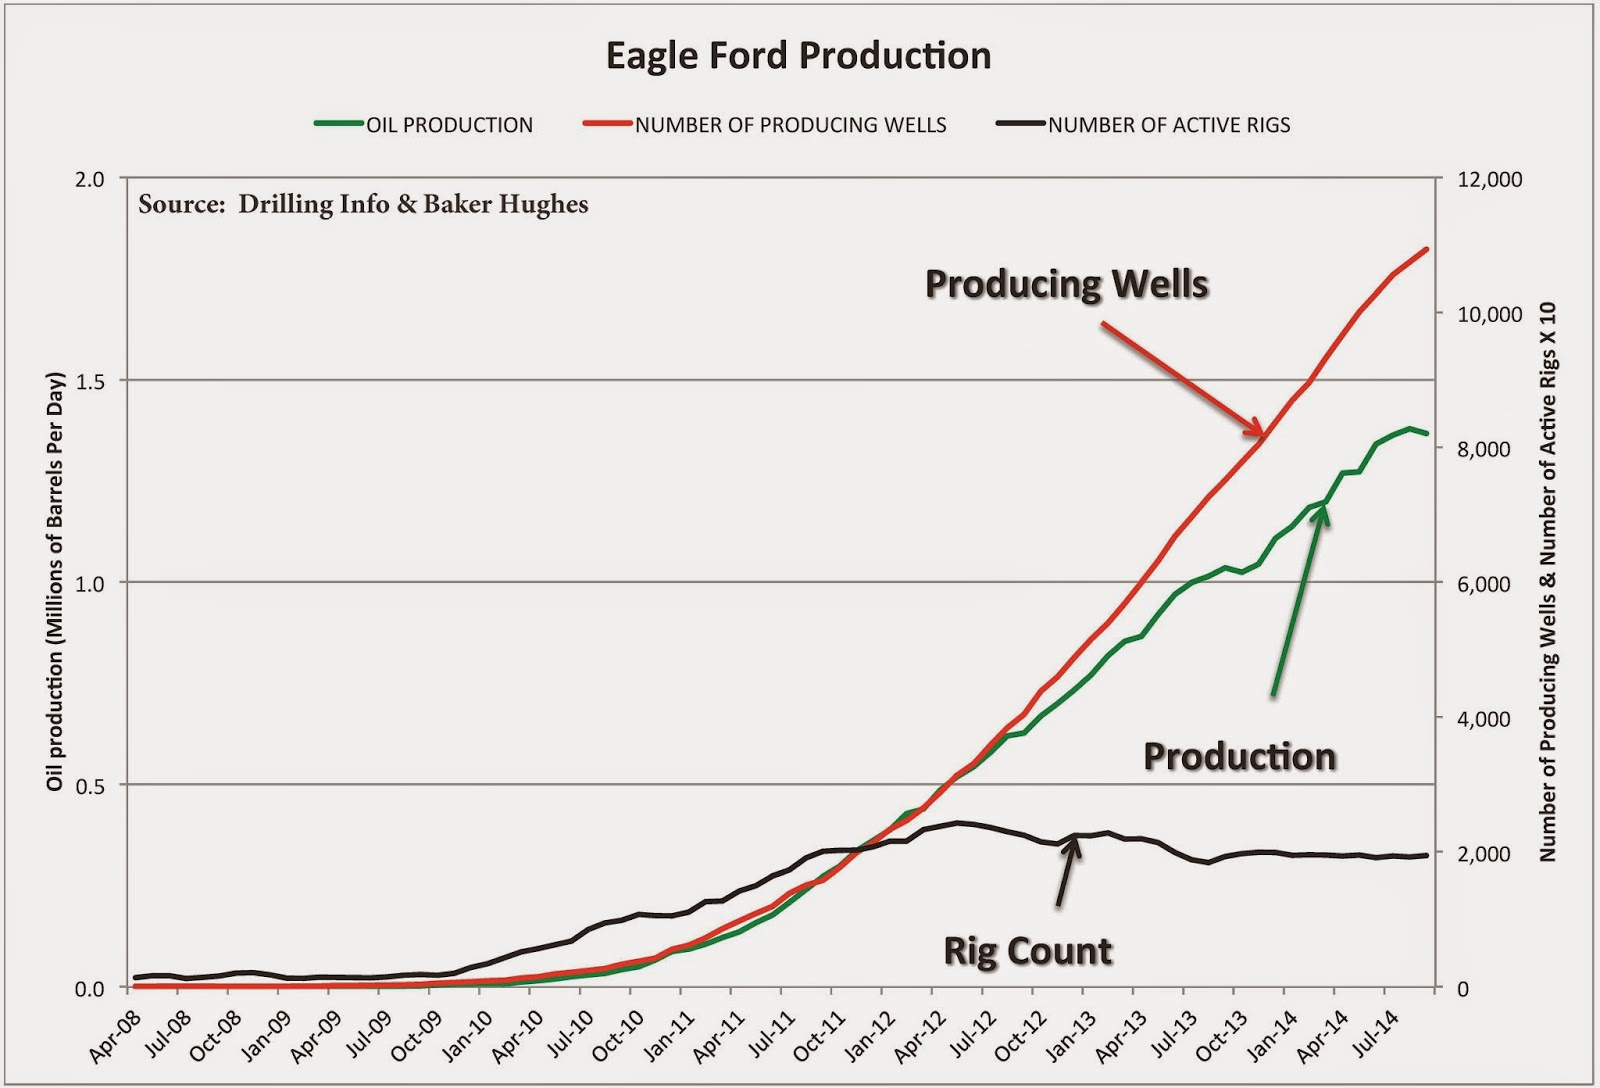 small resolution of the next chart below shows eagle ford oil production the number of producing wells and the number of active drilling rigs versus time